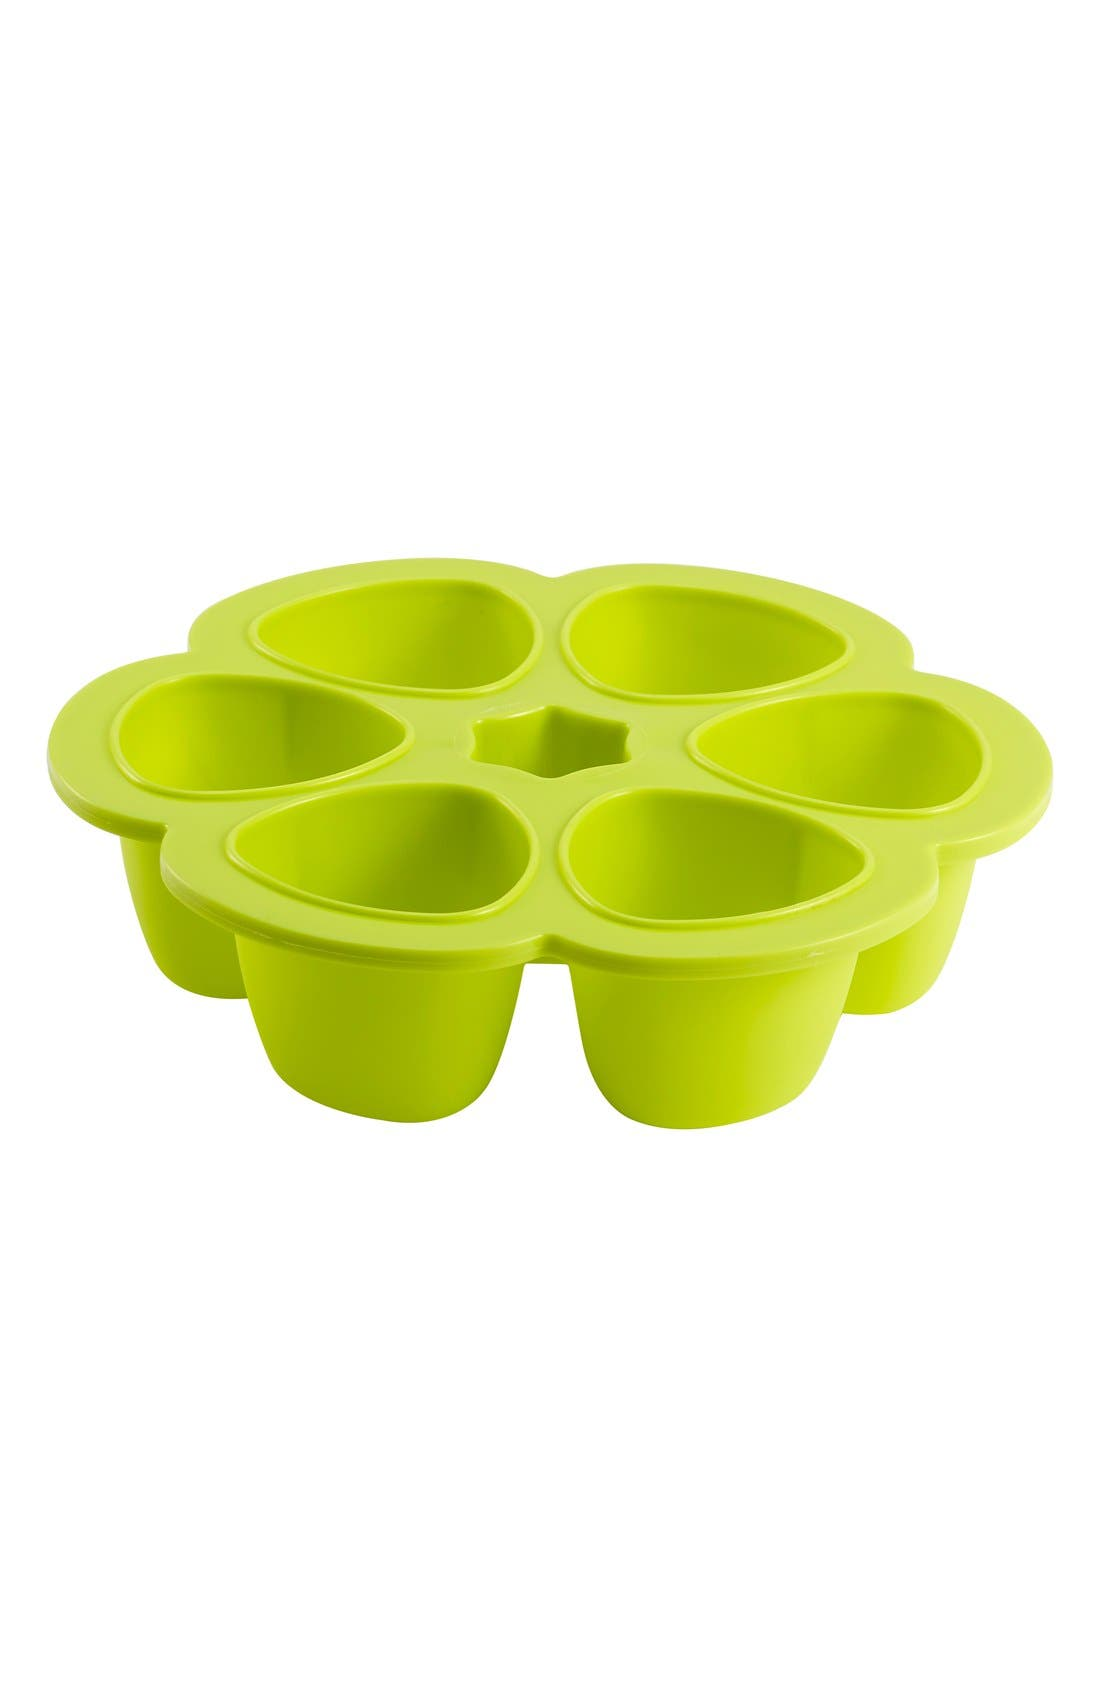 'Multiportions' 3 oz. Food Cup Tray,                             Main thumbnail 1, color,                             Neon